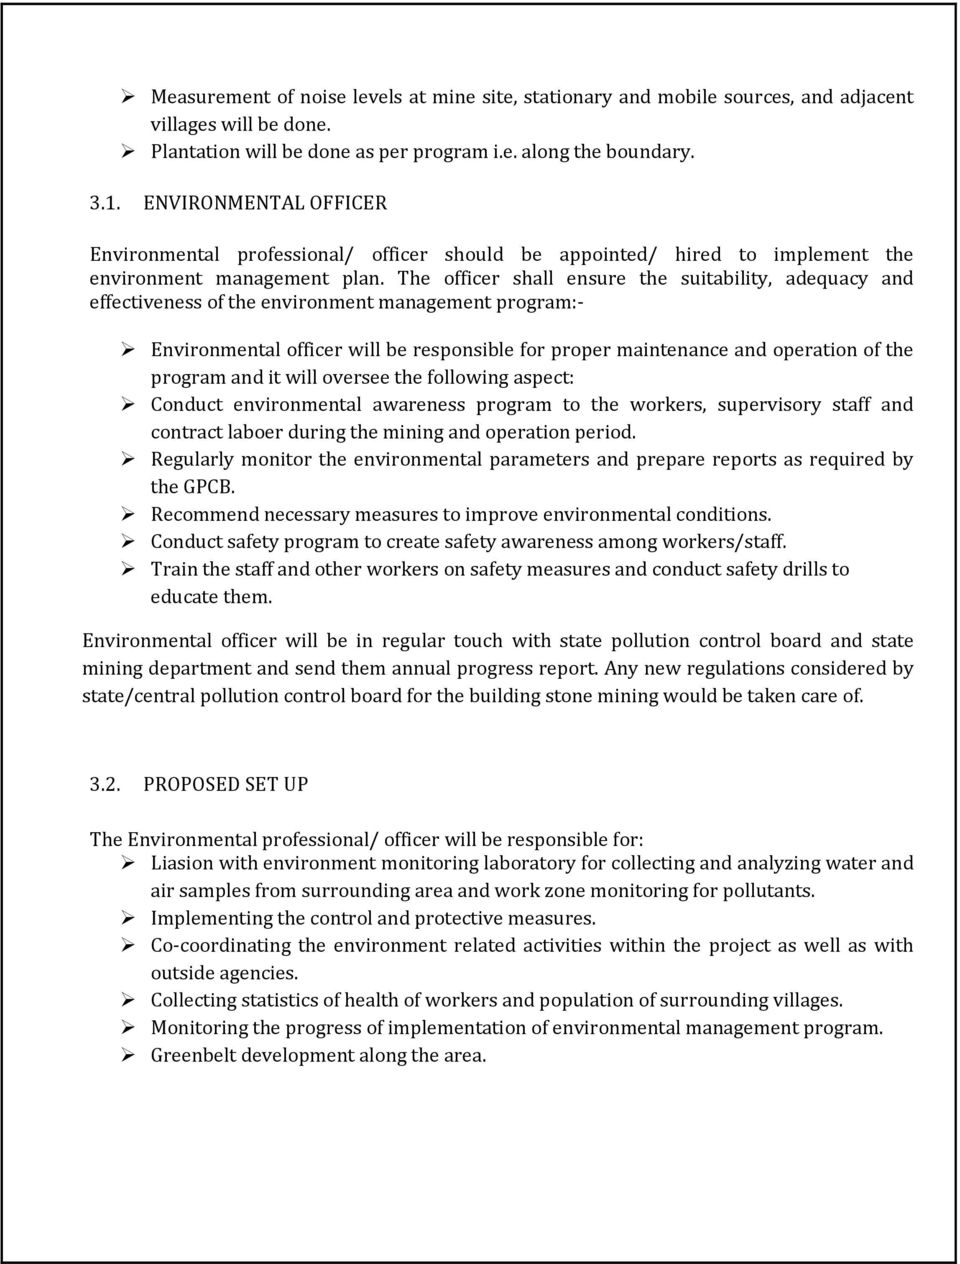 The officer shall ensure the suitability, adequacy and effectiveness of the environment management program:- Environmental officer will be responsible for proper maintenance and operation of the